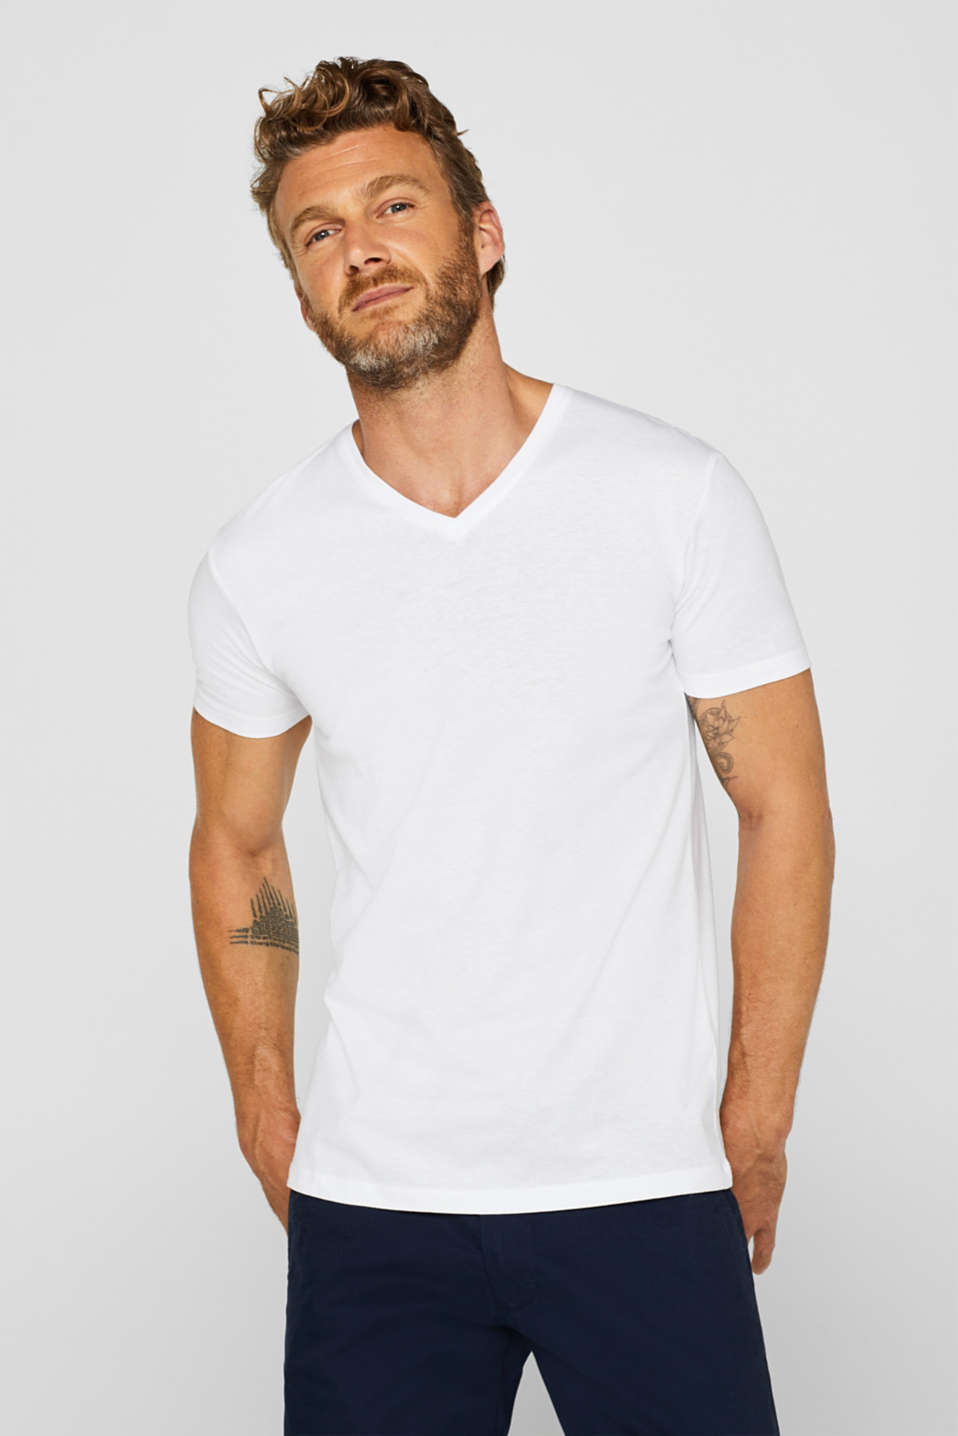 Esprit - Double pack of jersey tees containing organic cotton